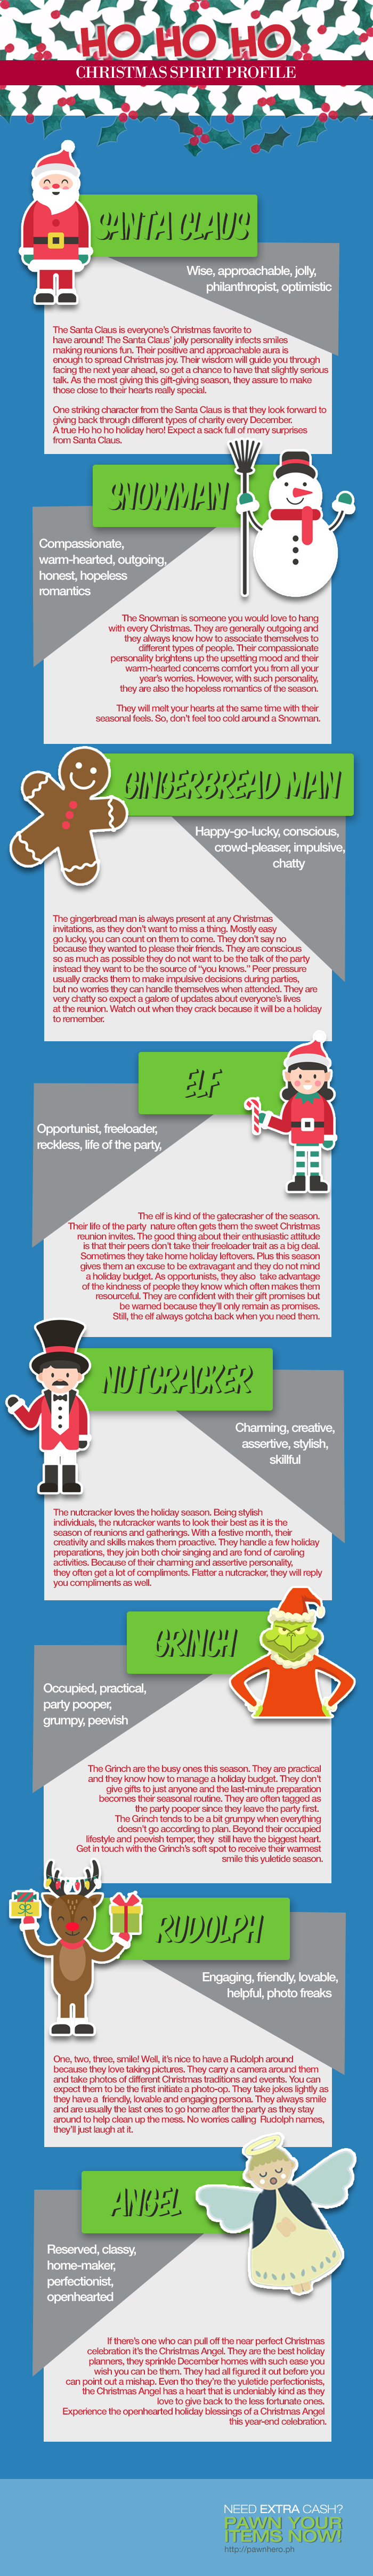 ChRISTMAS-PROFILE_INFOGRAPHIC